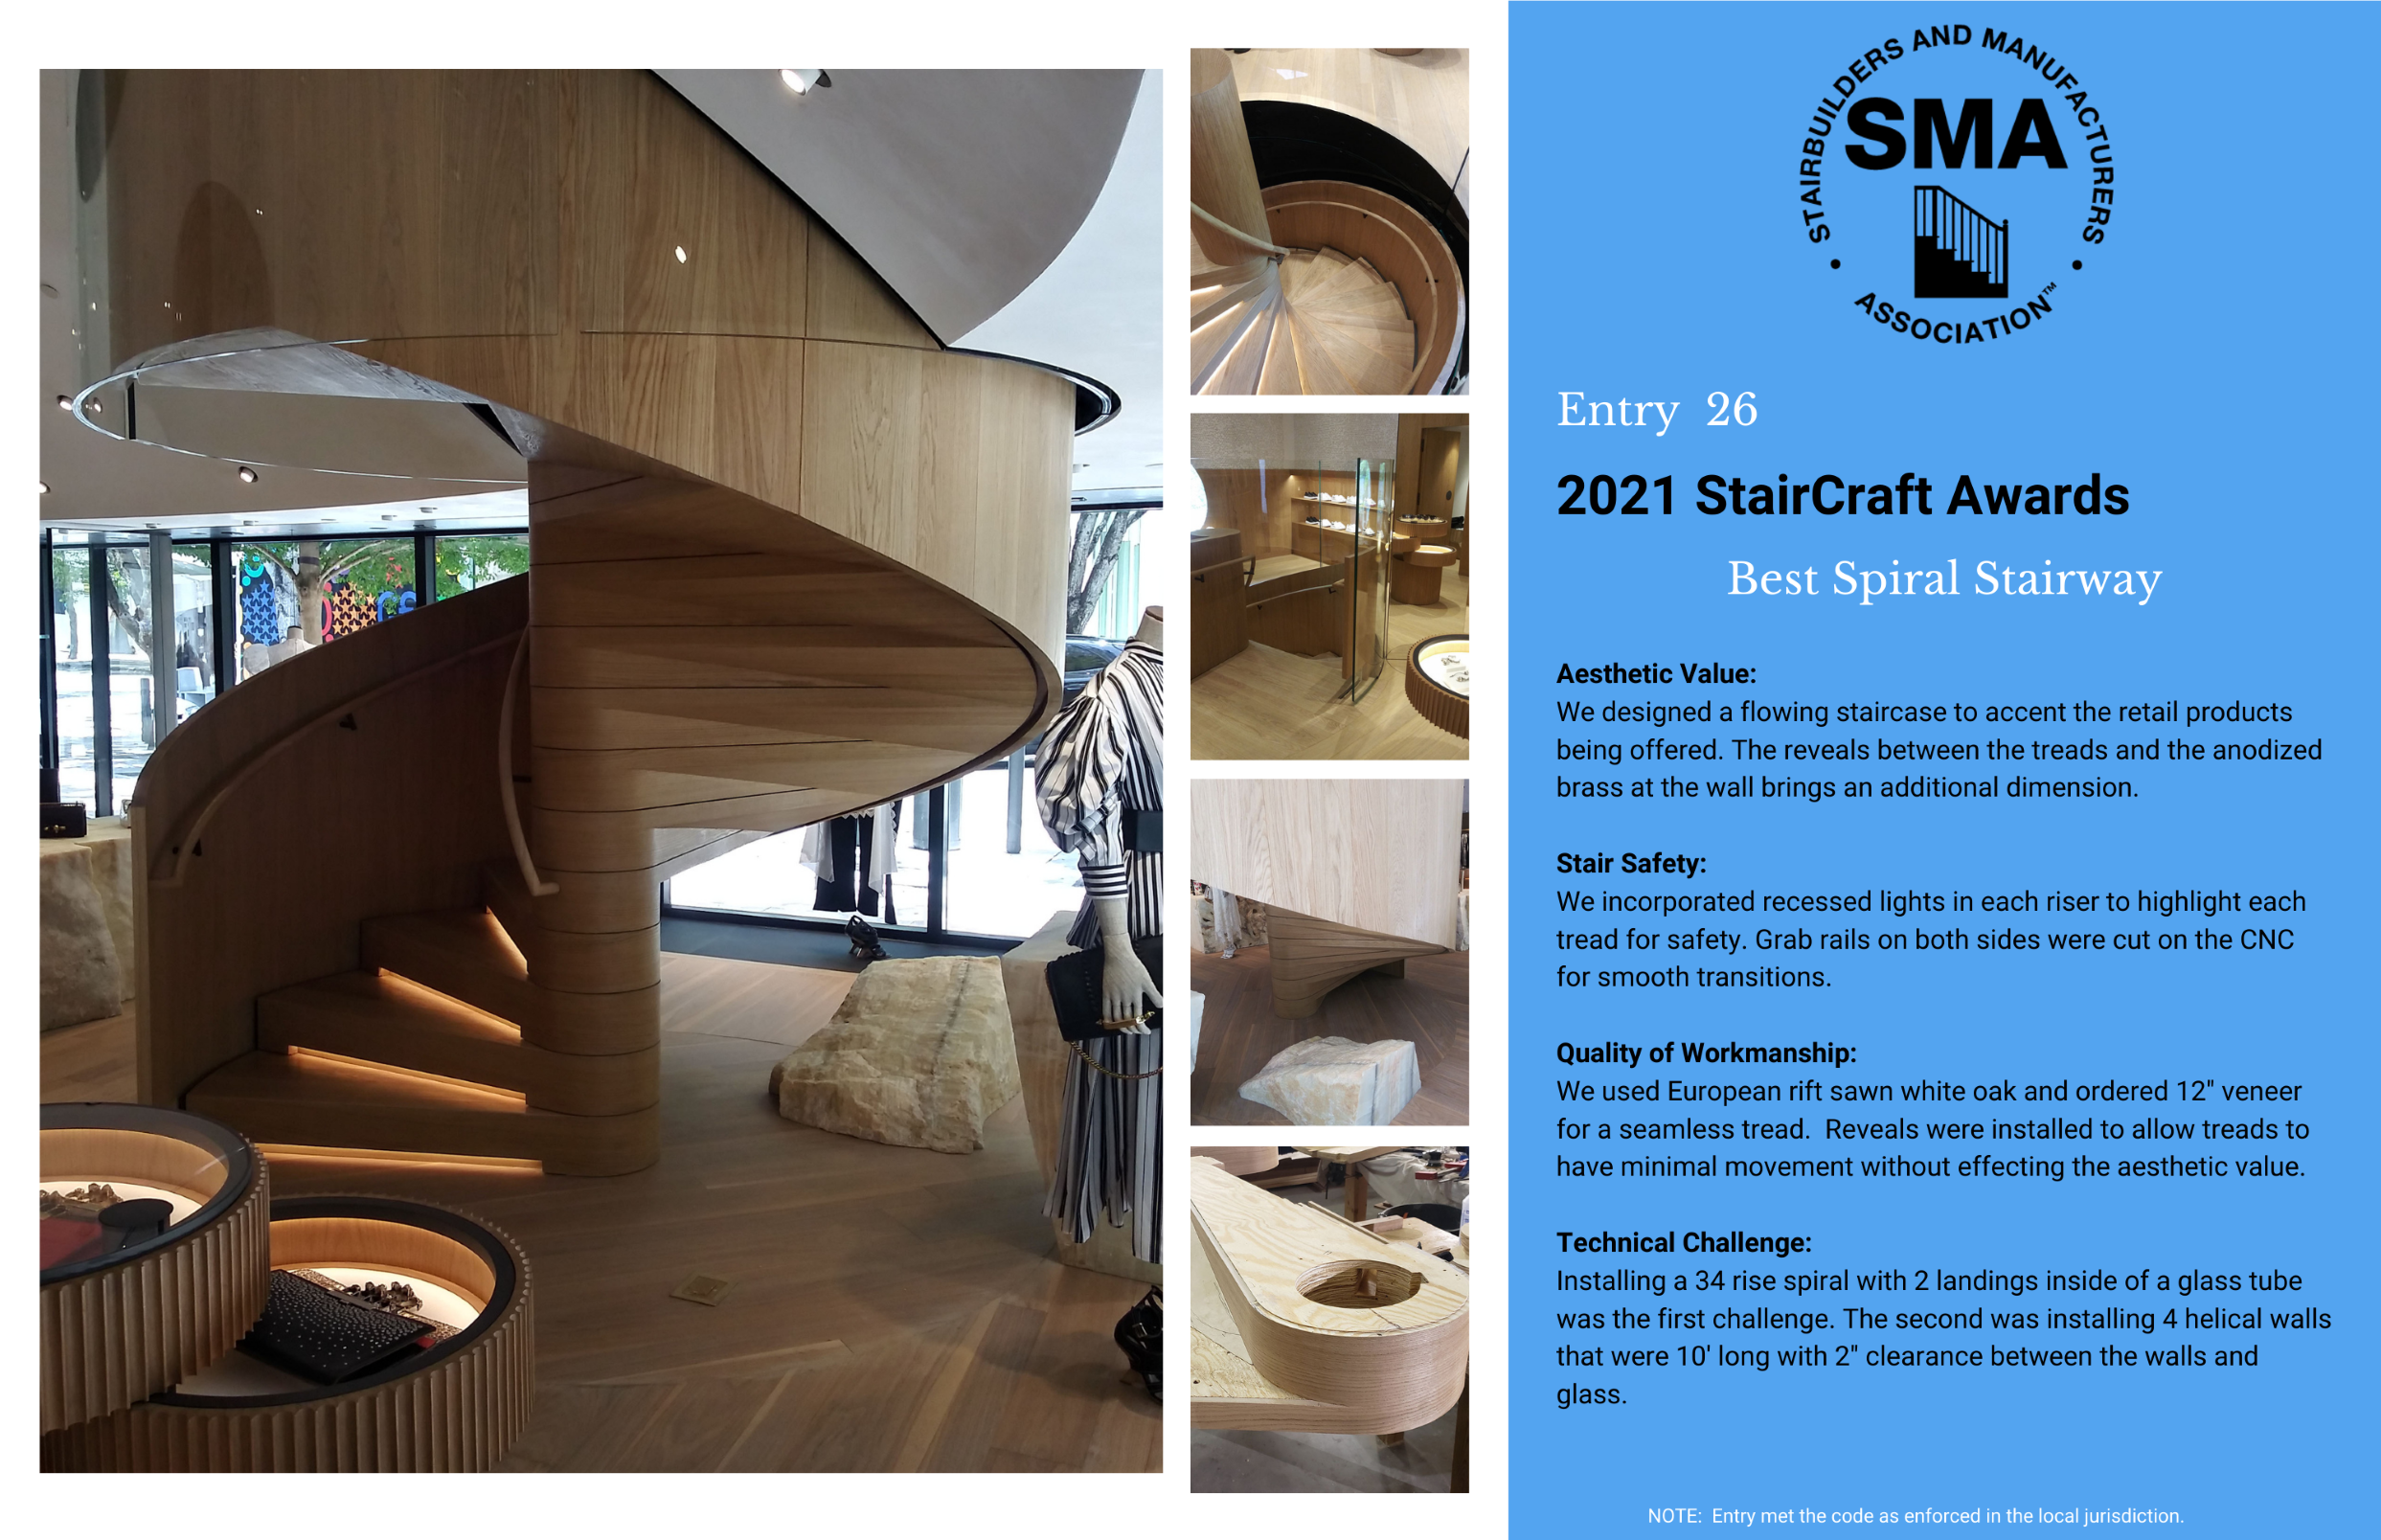 2021 StairCraft Awards Entry 26